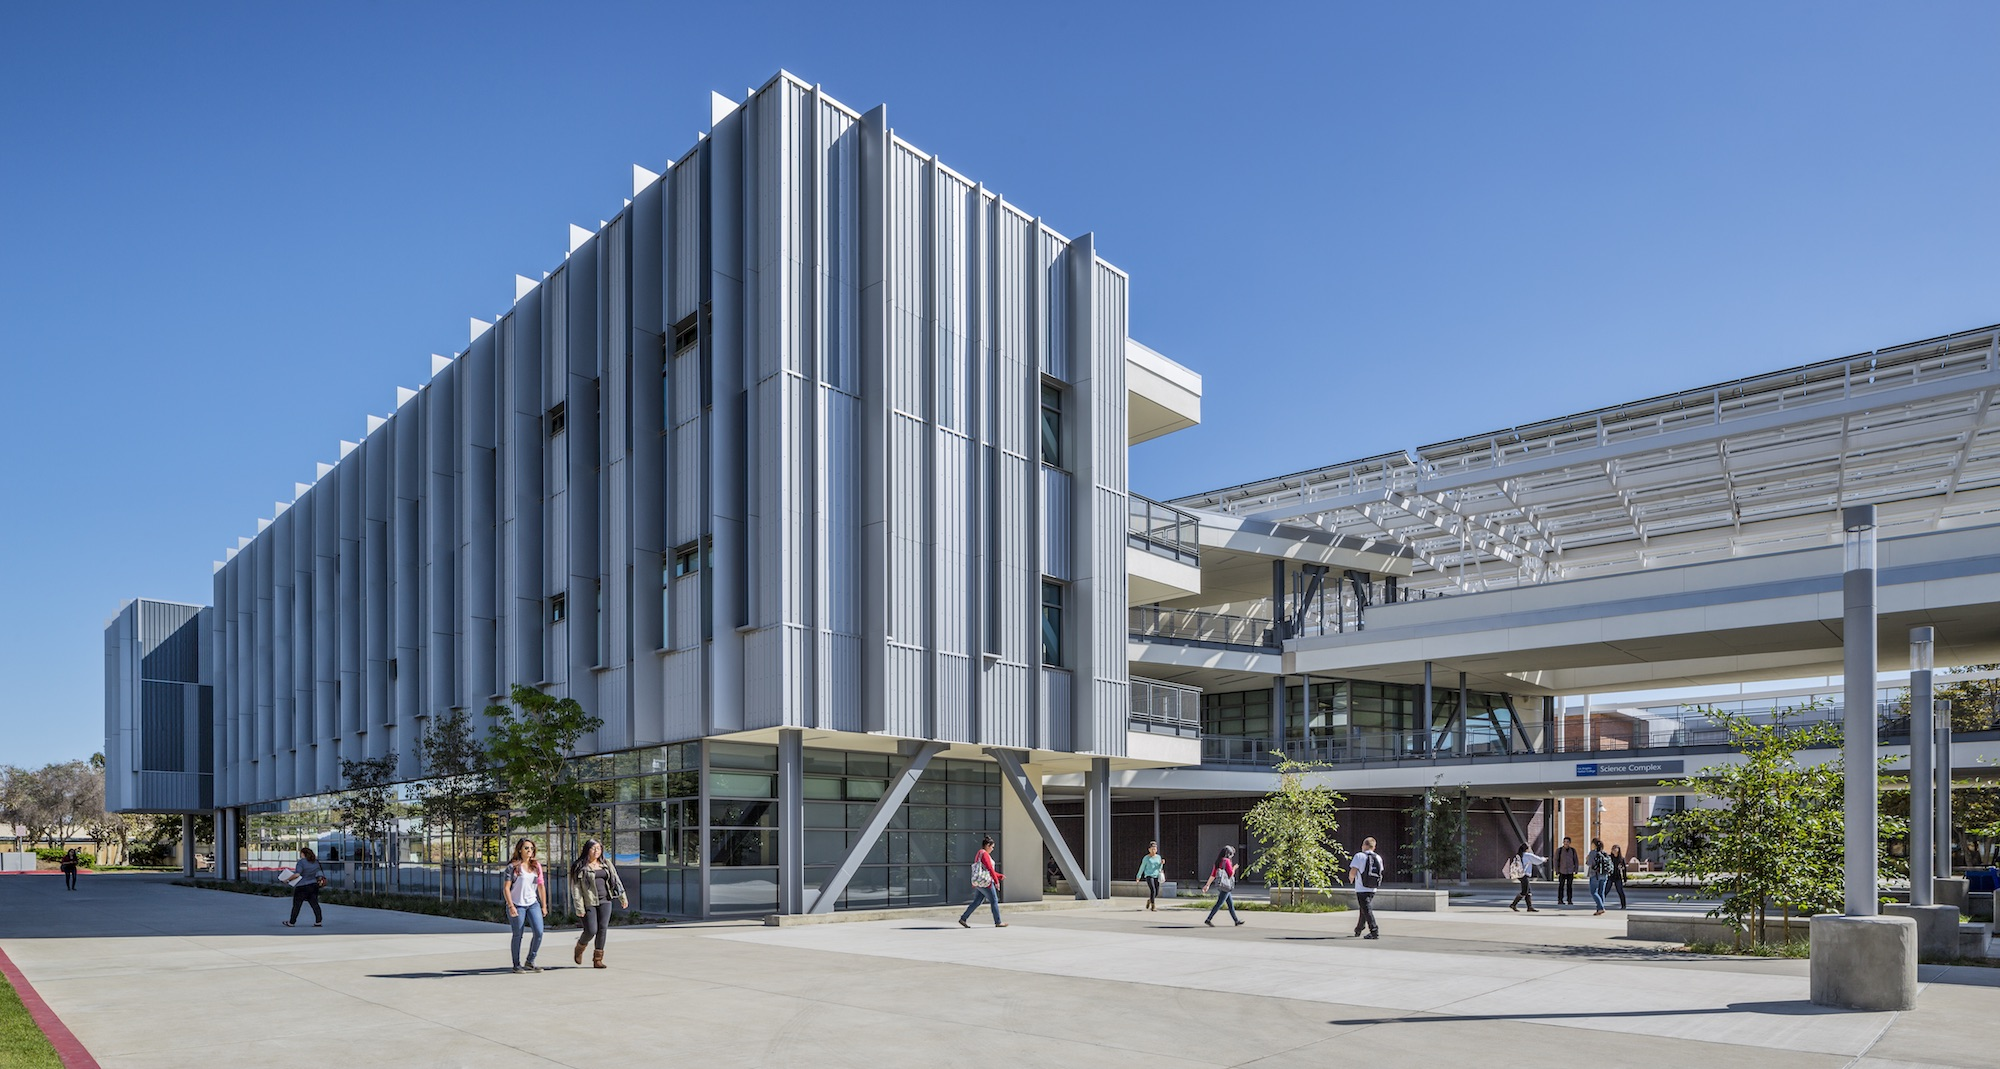 Los angeles harbor college science complex architect for Design consultant los angeles